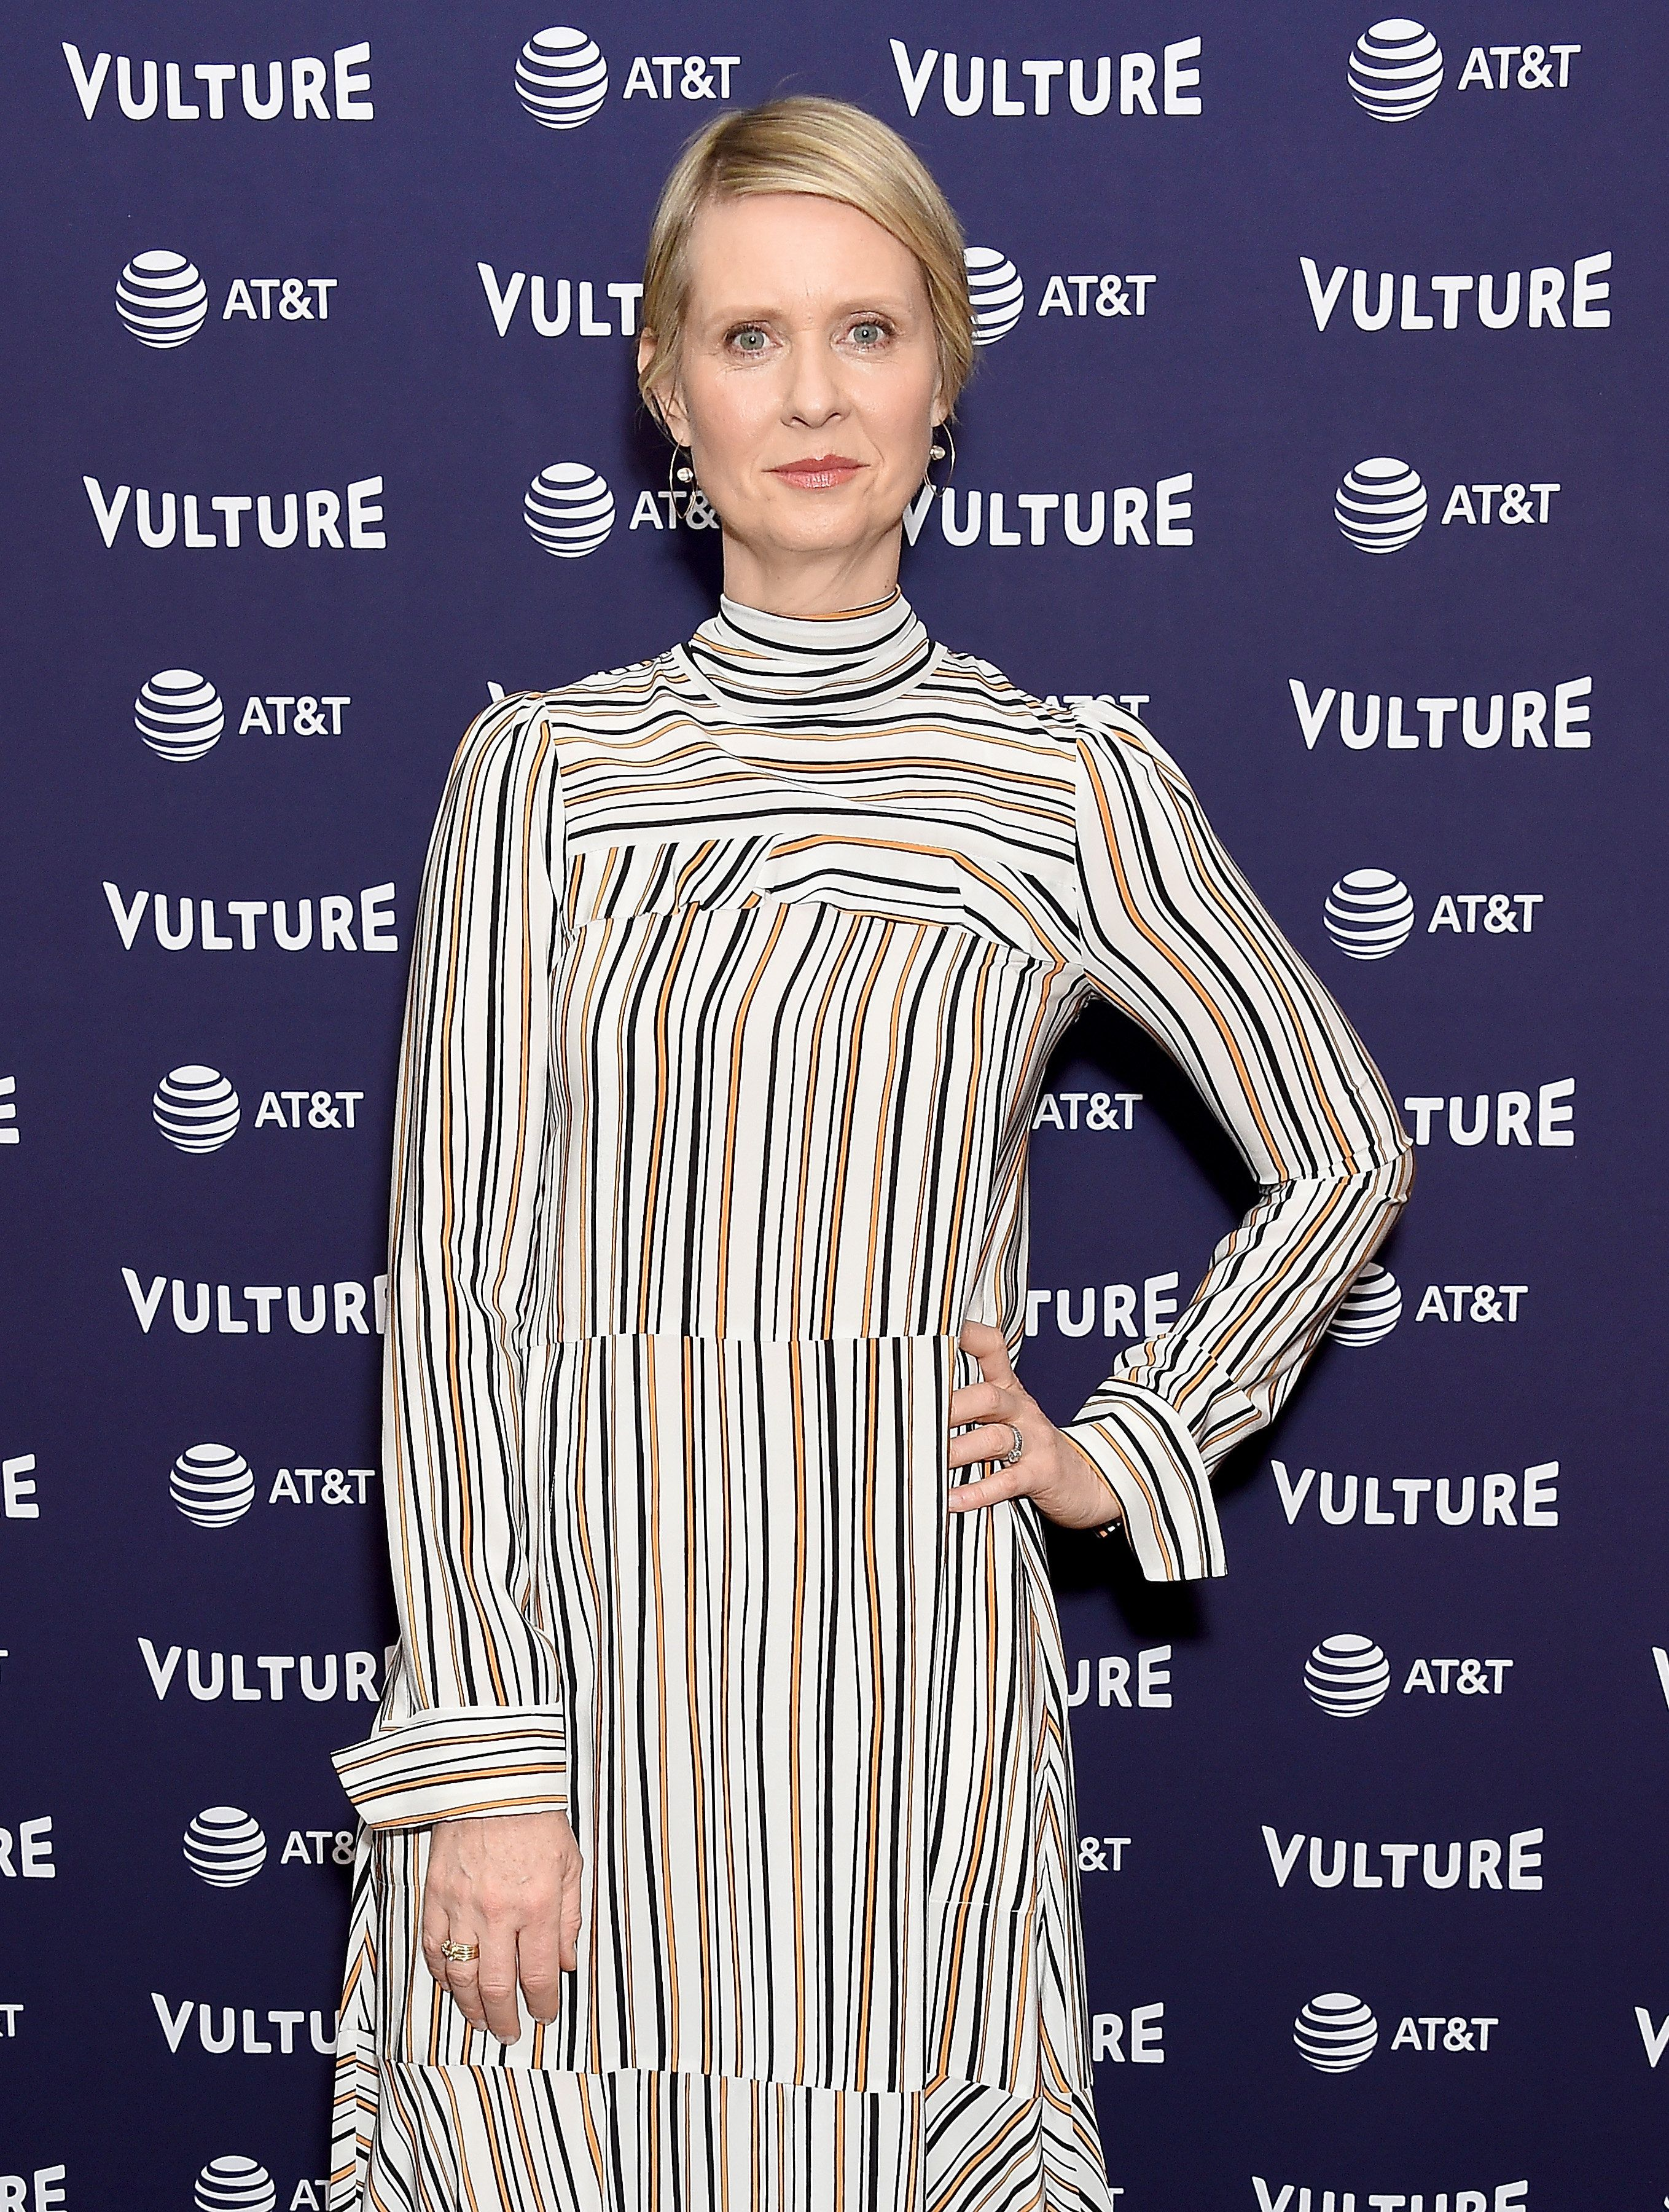 LOS ANGELES, CA - NOVEMBER 18:  Cynthia Nixon attends Vulture Festival Los Angeles 2018 at The Hollywood Roosevelt Hotel on November 18, 2018 in Los Angeles, California.  (Photo by Gregg DeGuire/Getty Images)